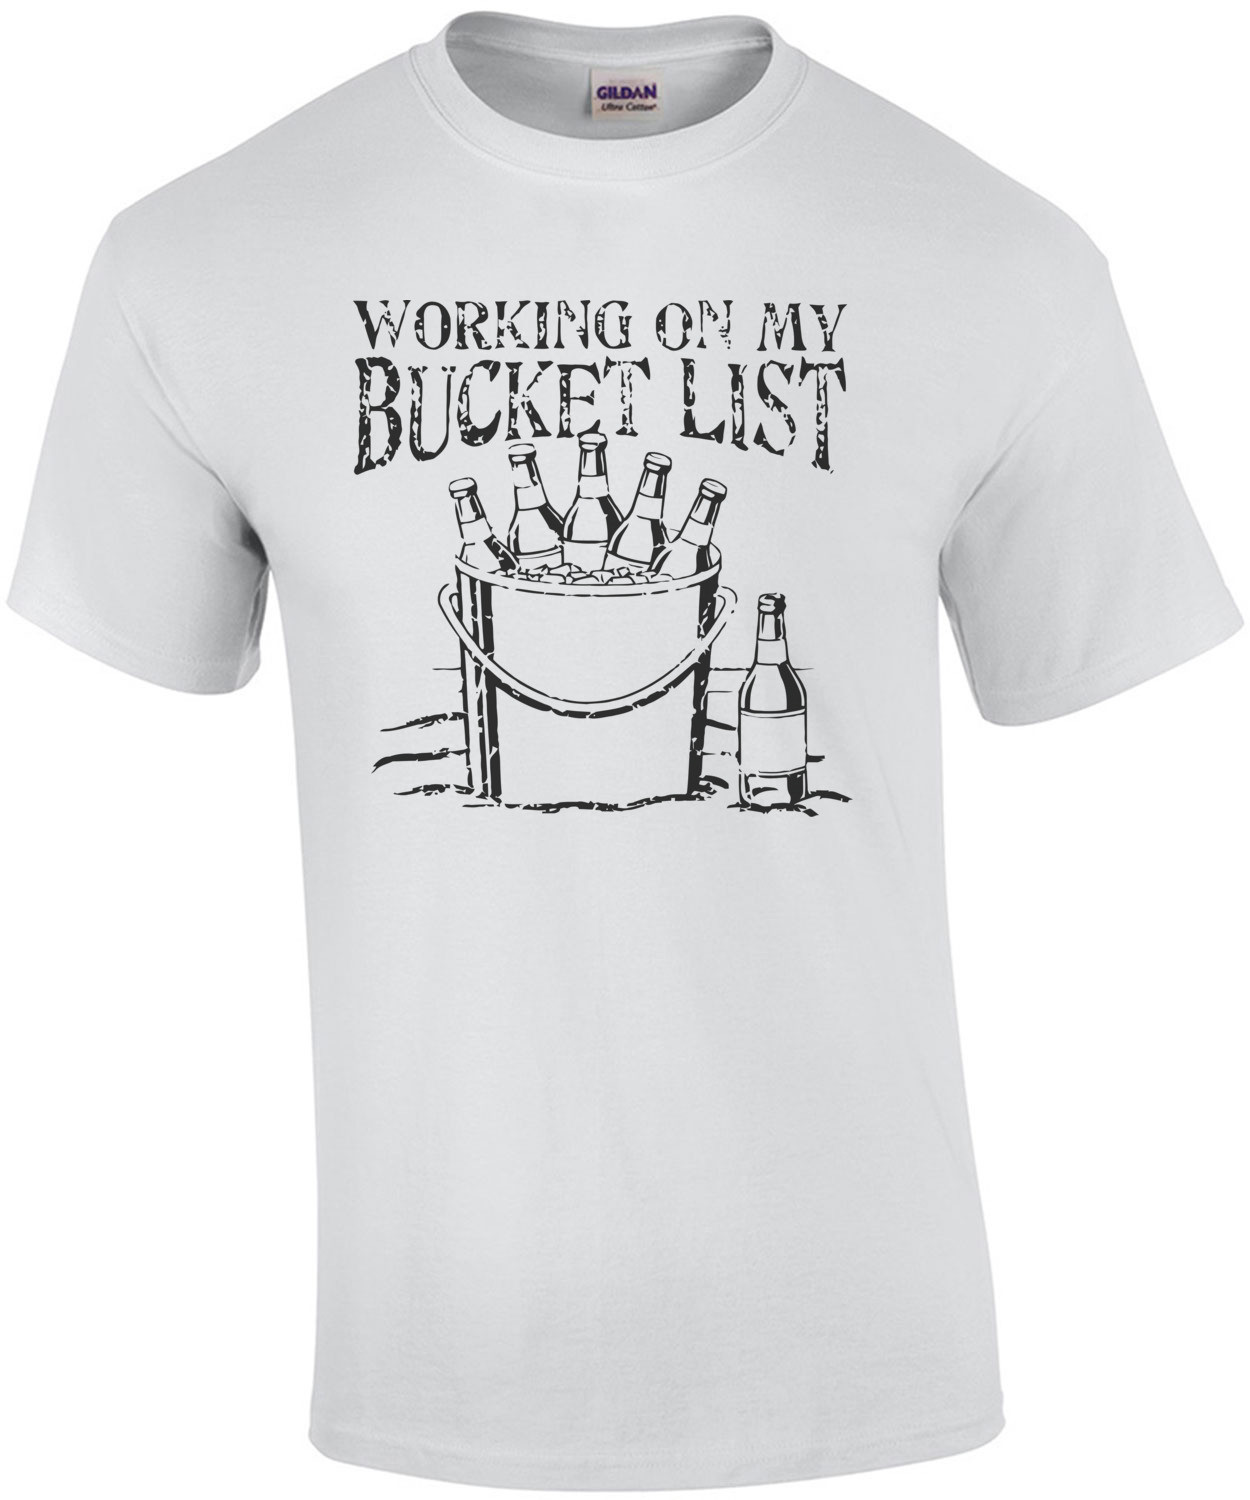 Working On My Bucket List T-Shirt